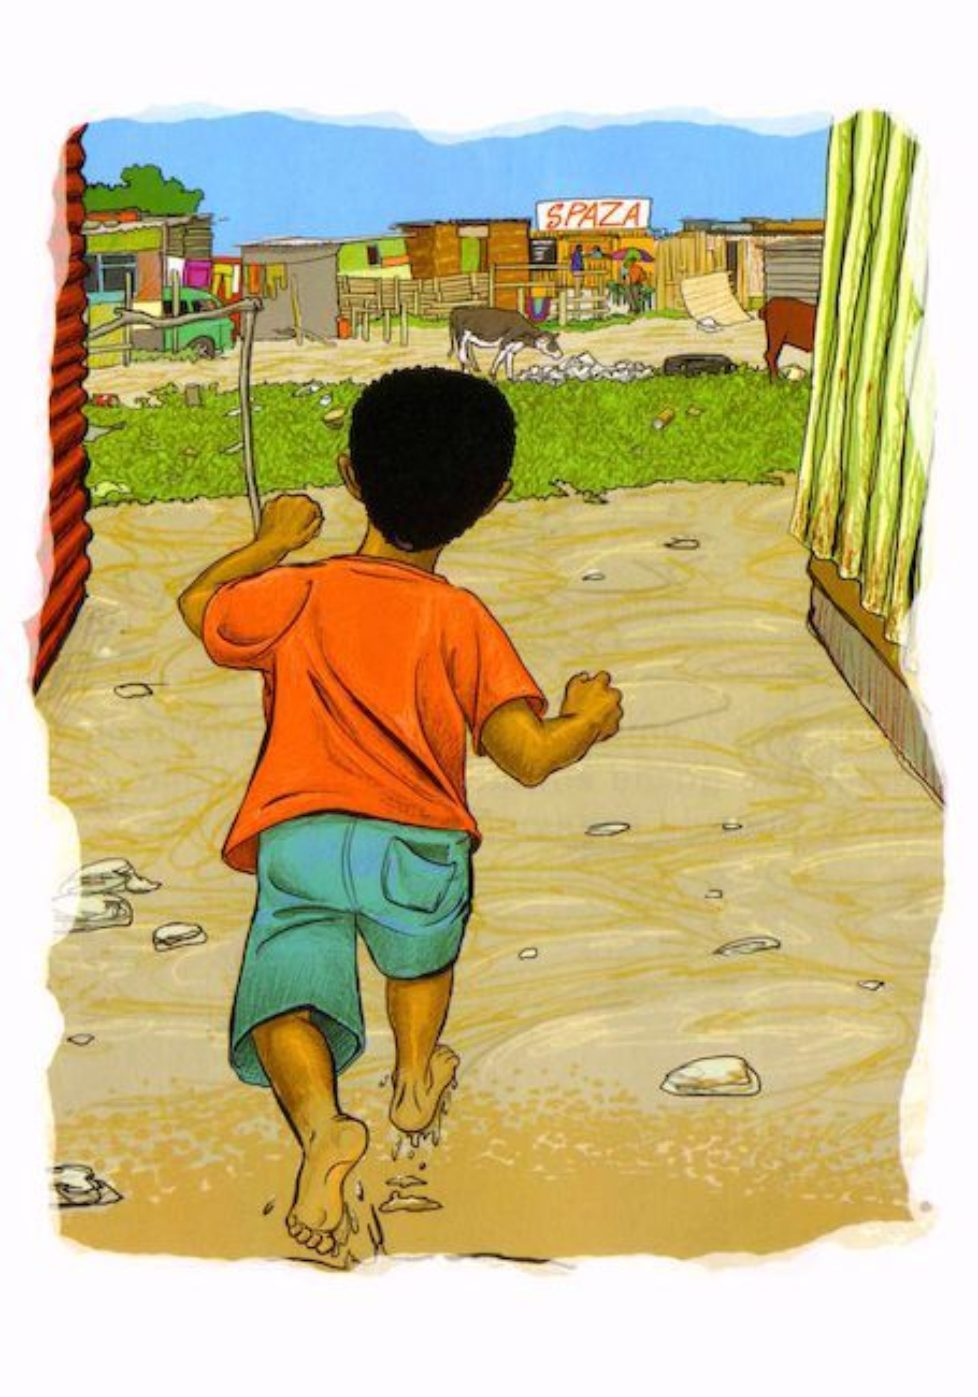 Pg 10 Themba's Day - illustration children's story